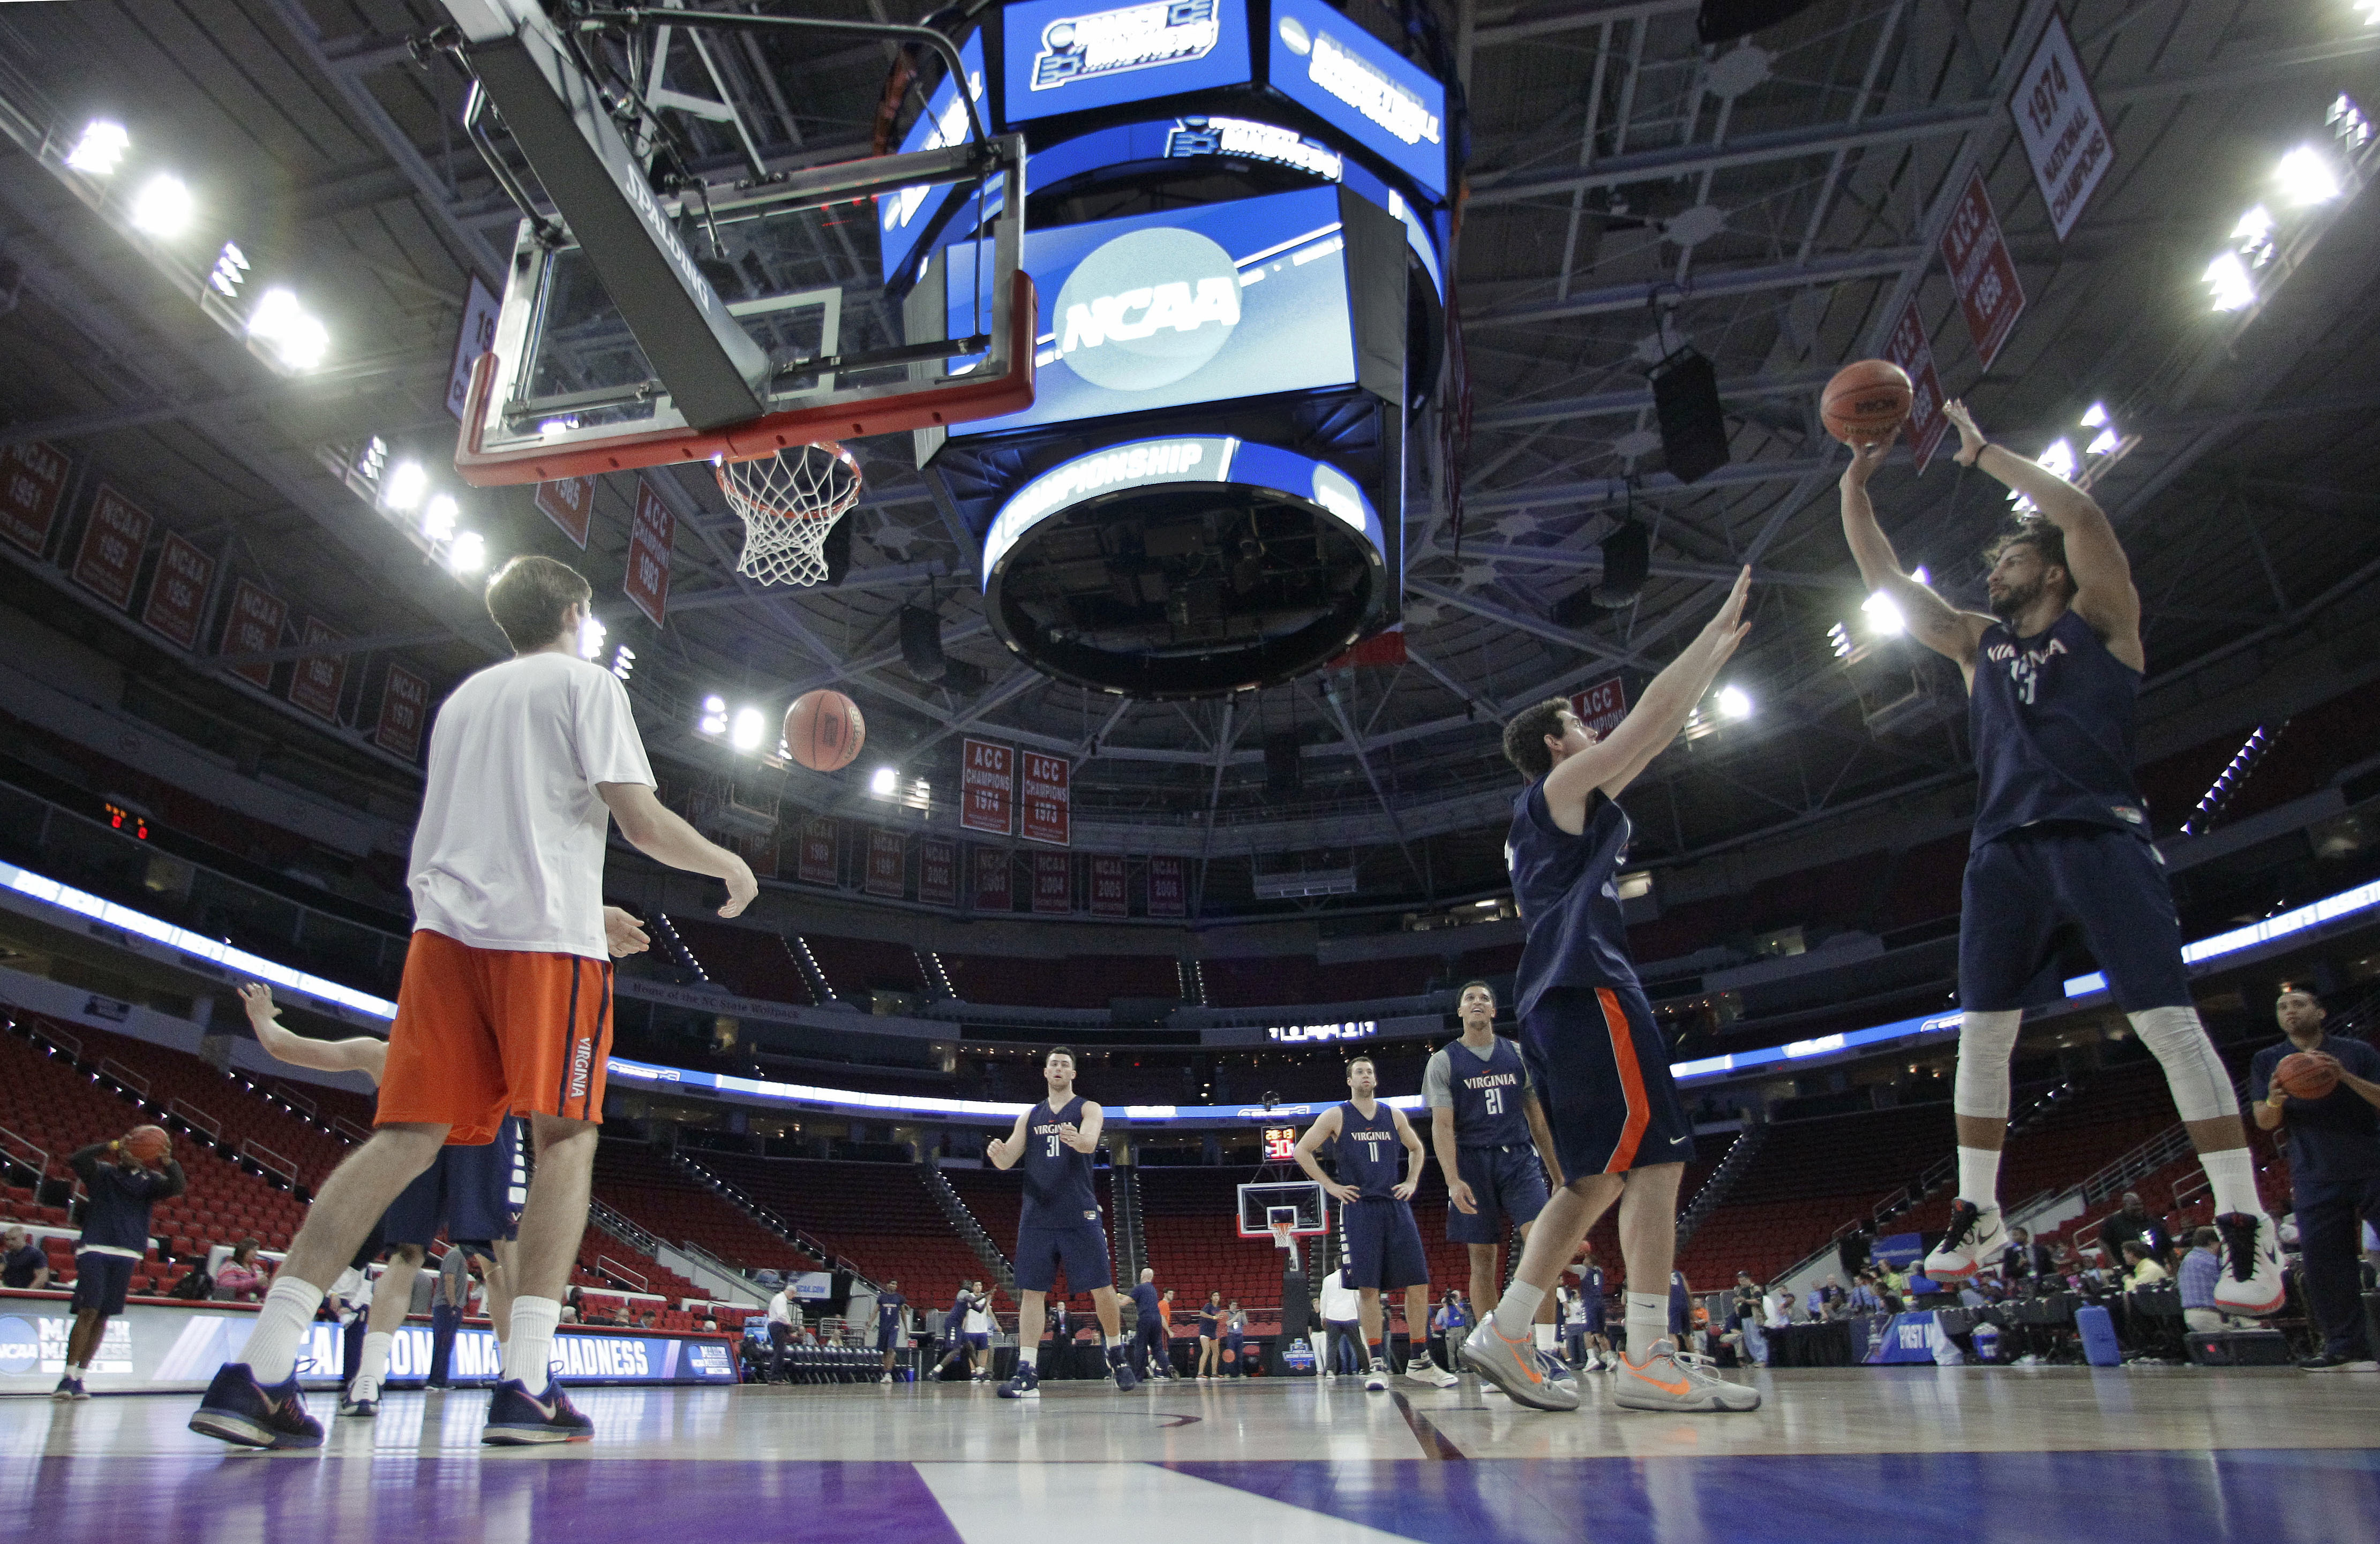 Virginia's Anthony Gill, right, shoots over a teammate during practice for a first-round men's college basketball game in the NCAA Tournament in Raleigh, N.C., Wednesday, March 16, 2016. Virginia plays Hampton on Thursday. (AP Photo/Chuck Burton)